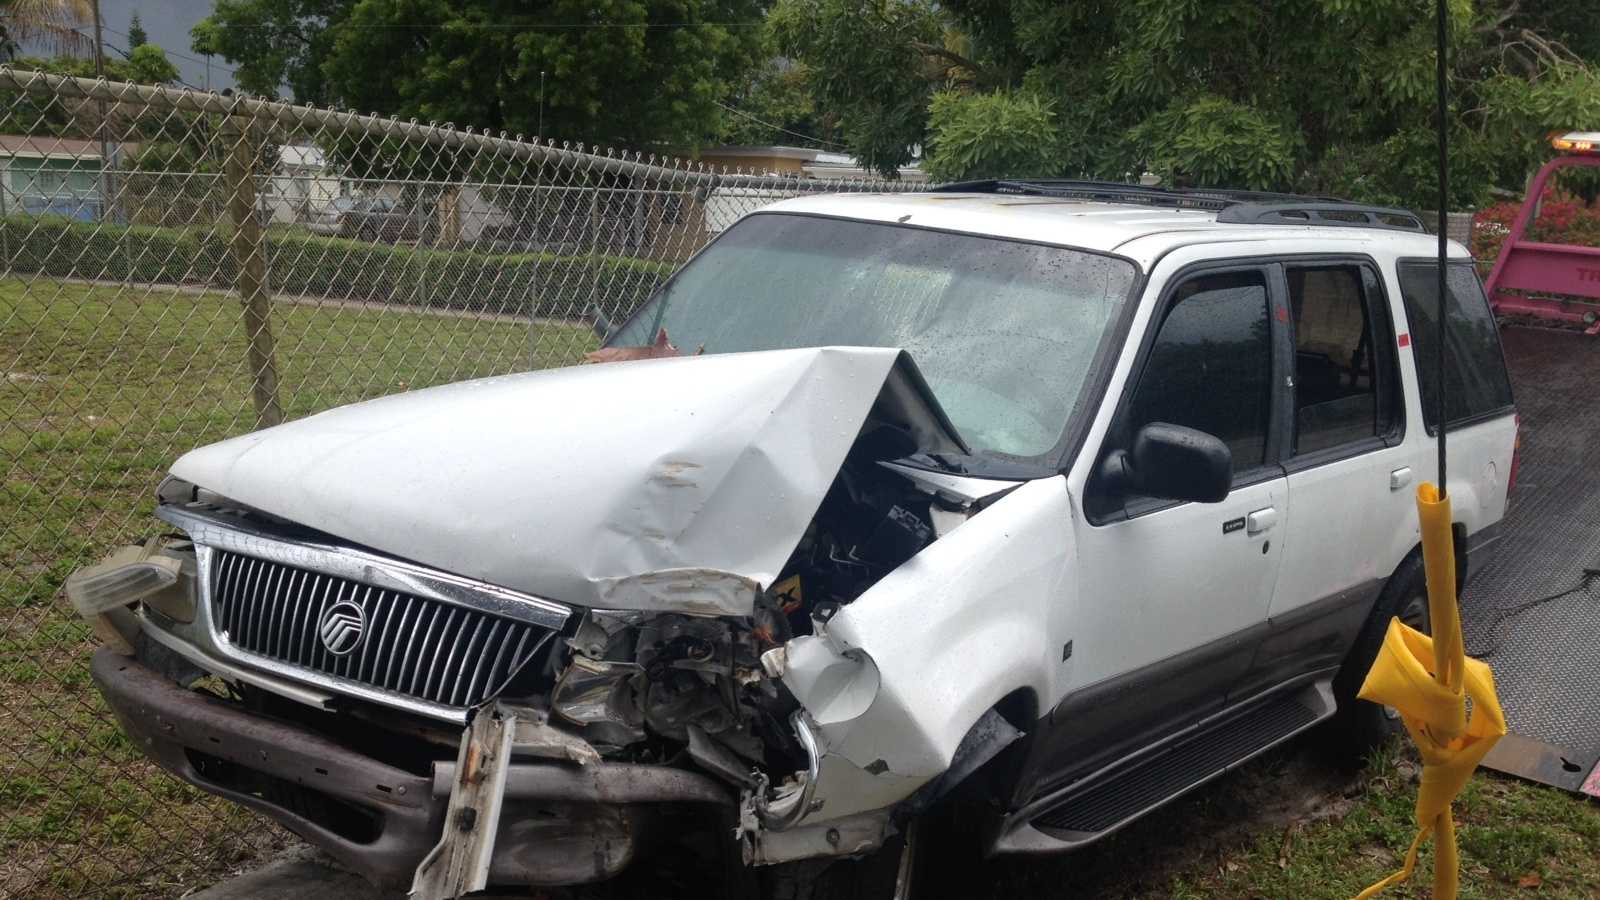 JUNE 17: A woman accused in a home burglary took off in this SUV and crashed it into a telephone pole, investigators said Tuesday.